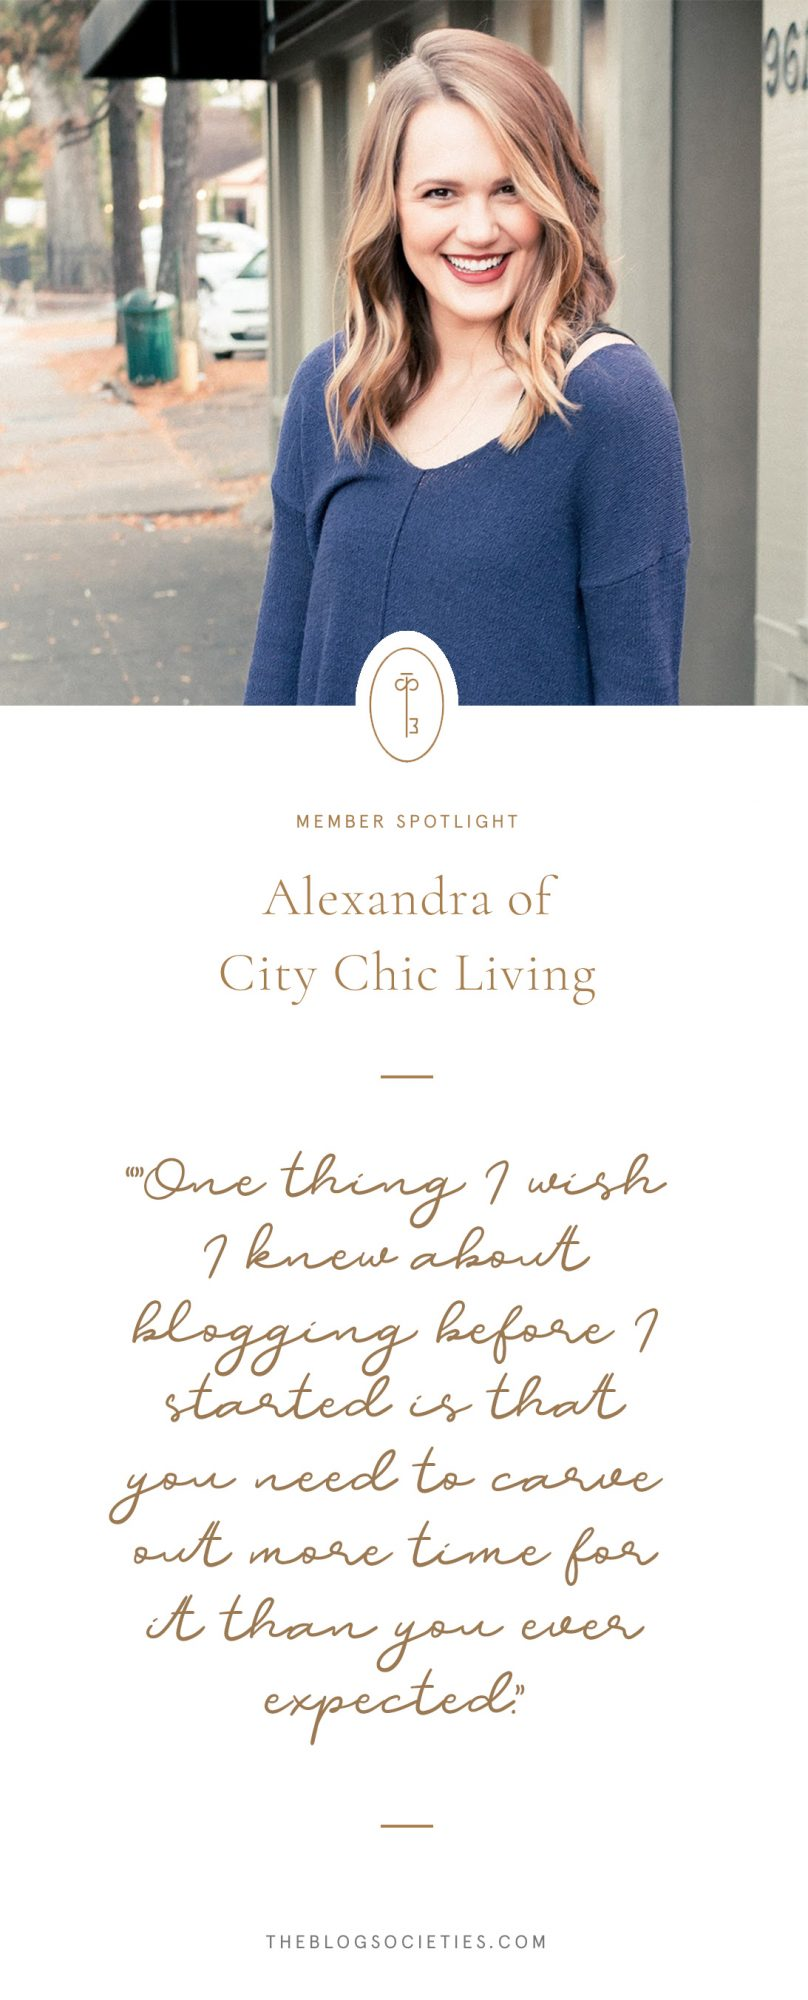 City Chic Living Blog - The Blog Societies